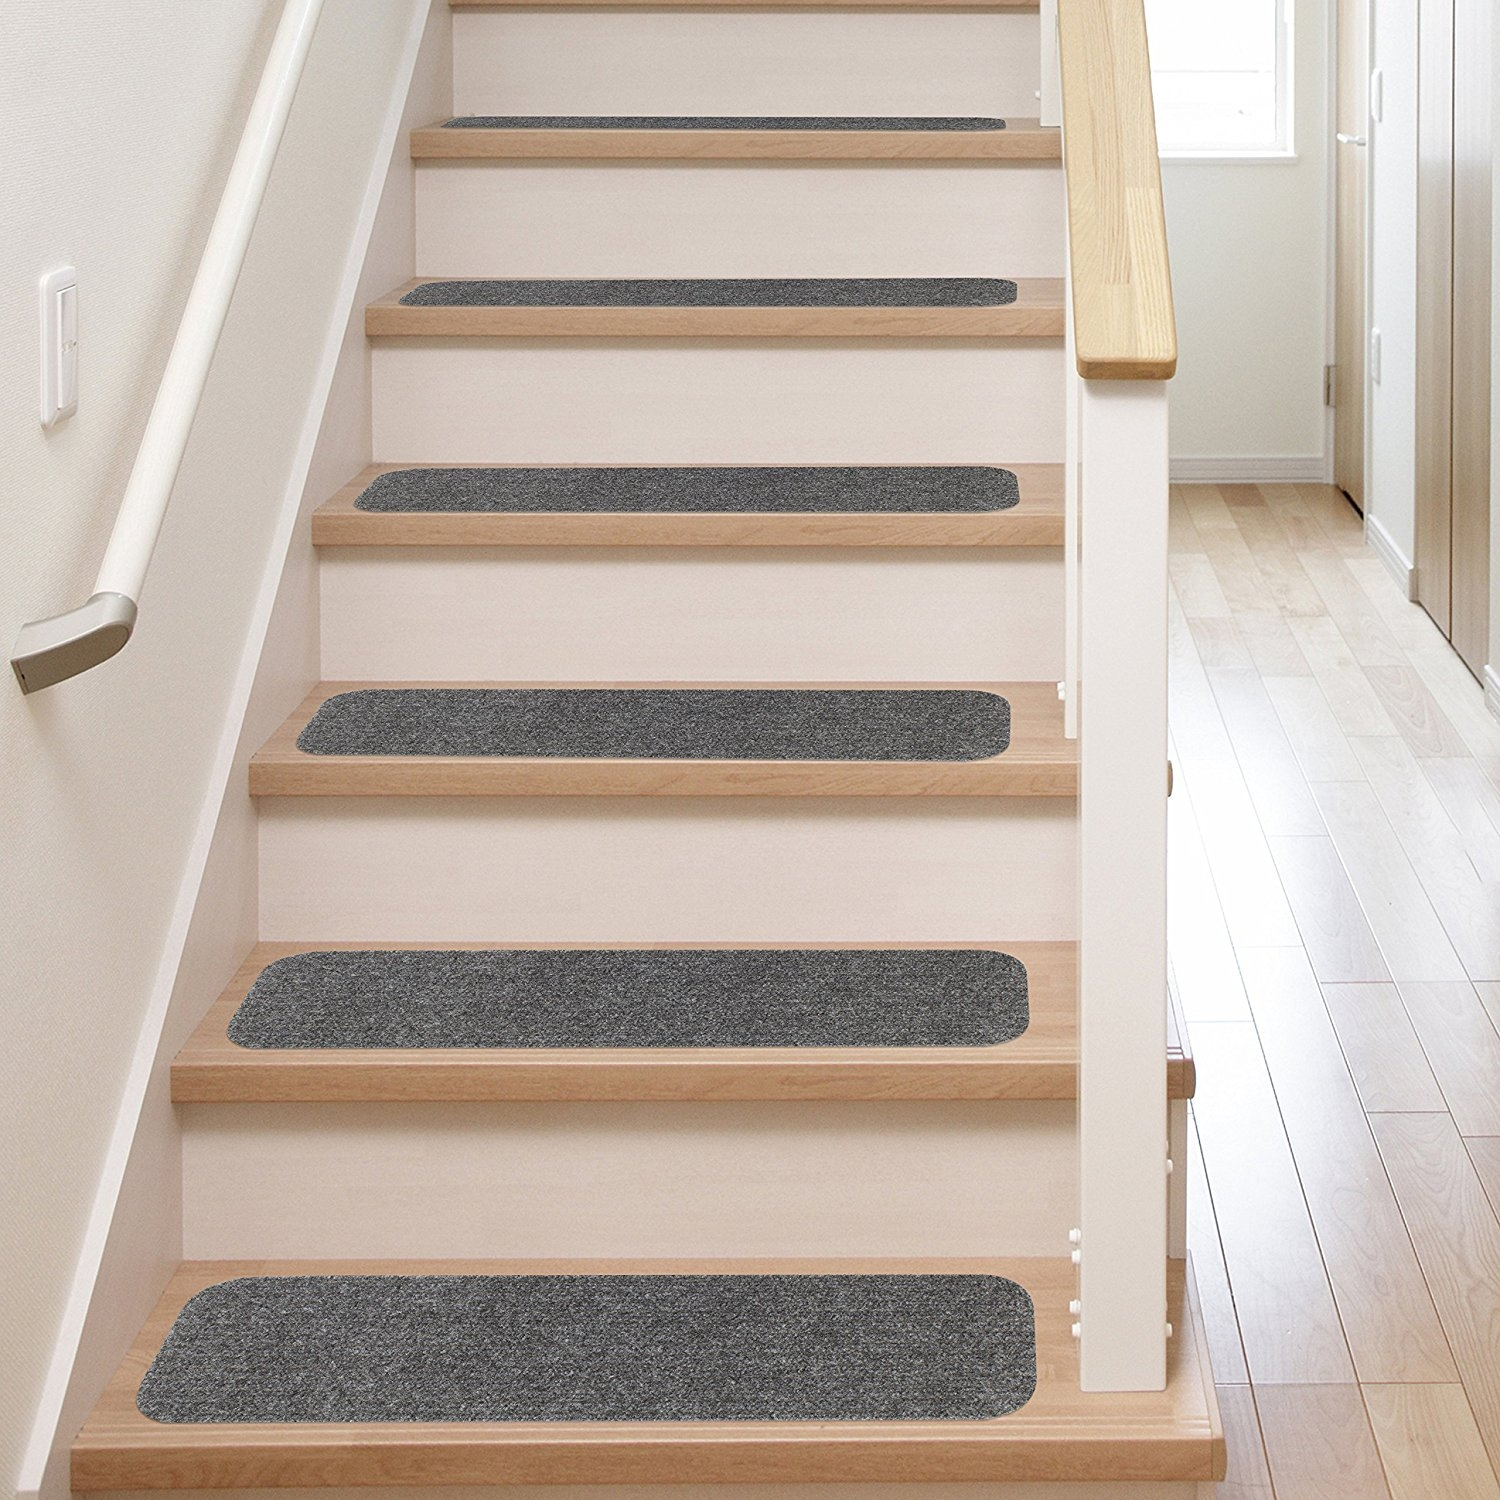 13 Stair Treads Non Slip Carpet Pads Easy Tape Installation Within Stair Tread Rugs Outdoor (Image 1 of 15)